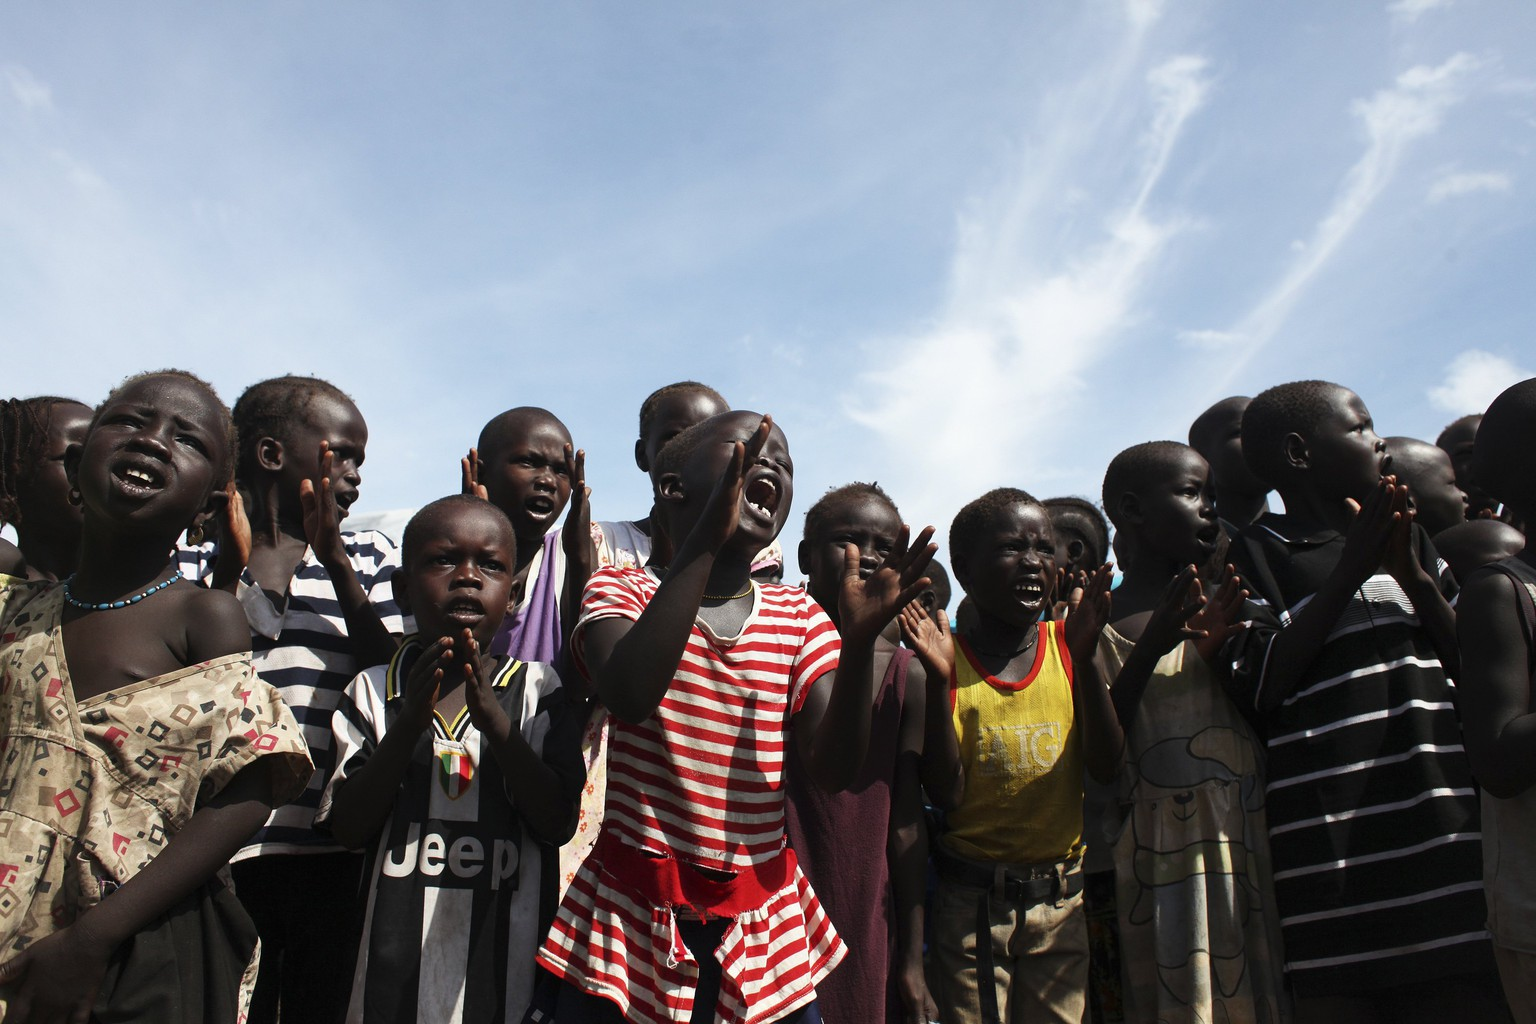 Children sing slogans against South Sudan's President Salva Kiir in an IDP (internally displaced persons) camp in the United Nations Mission In South Sudan (UNMISS) base in Juba May 6, 2014. EUTERS/Andreea Campeanu  (SOUTH SUDAN - Tags: POLITICS CIVIL UNREST)